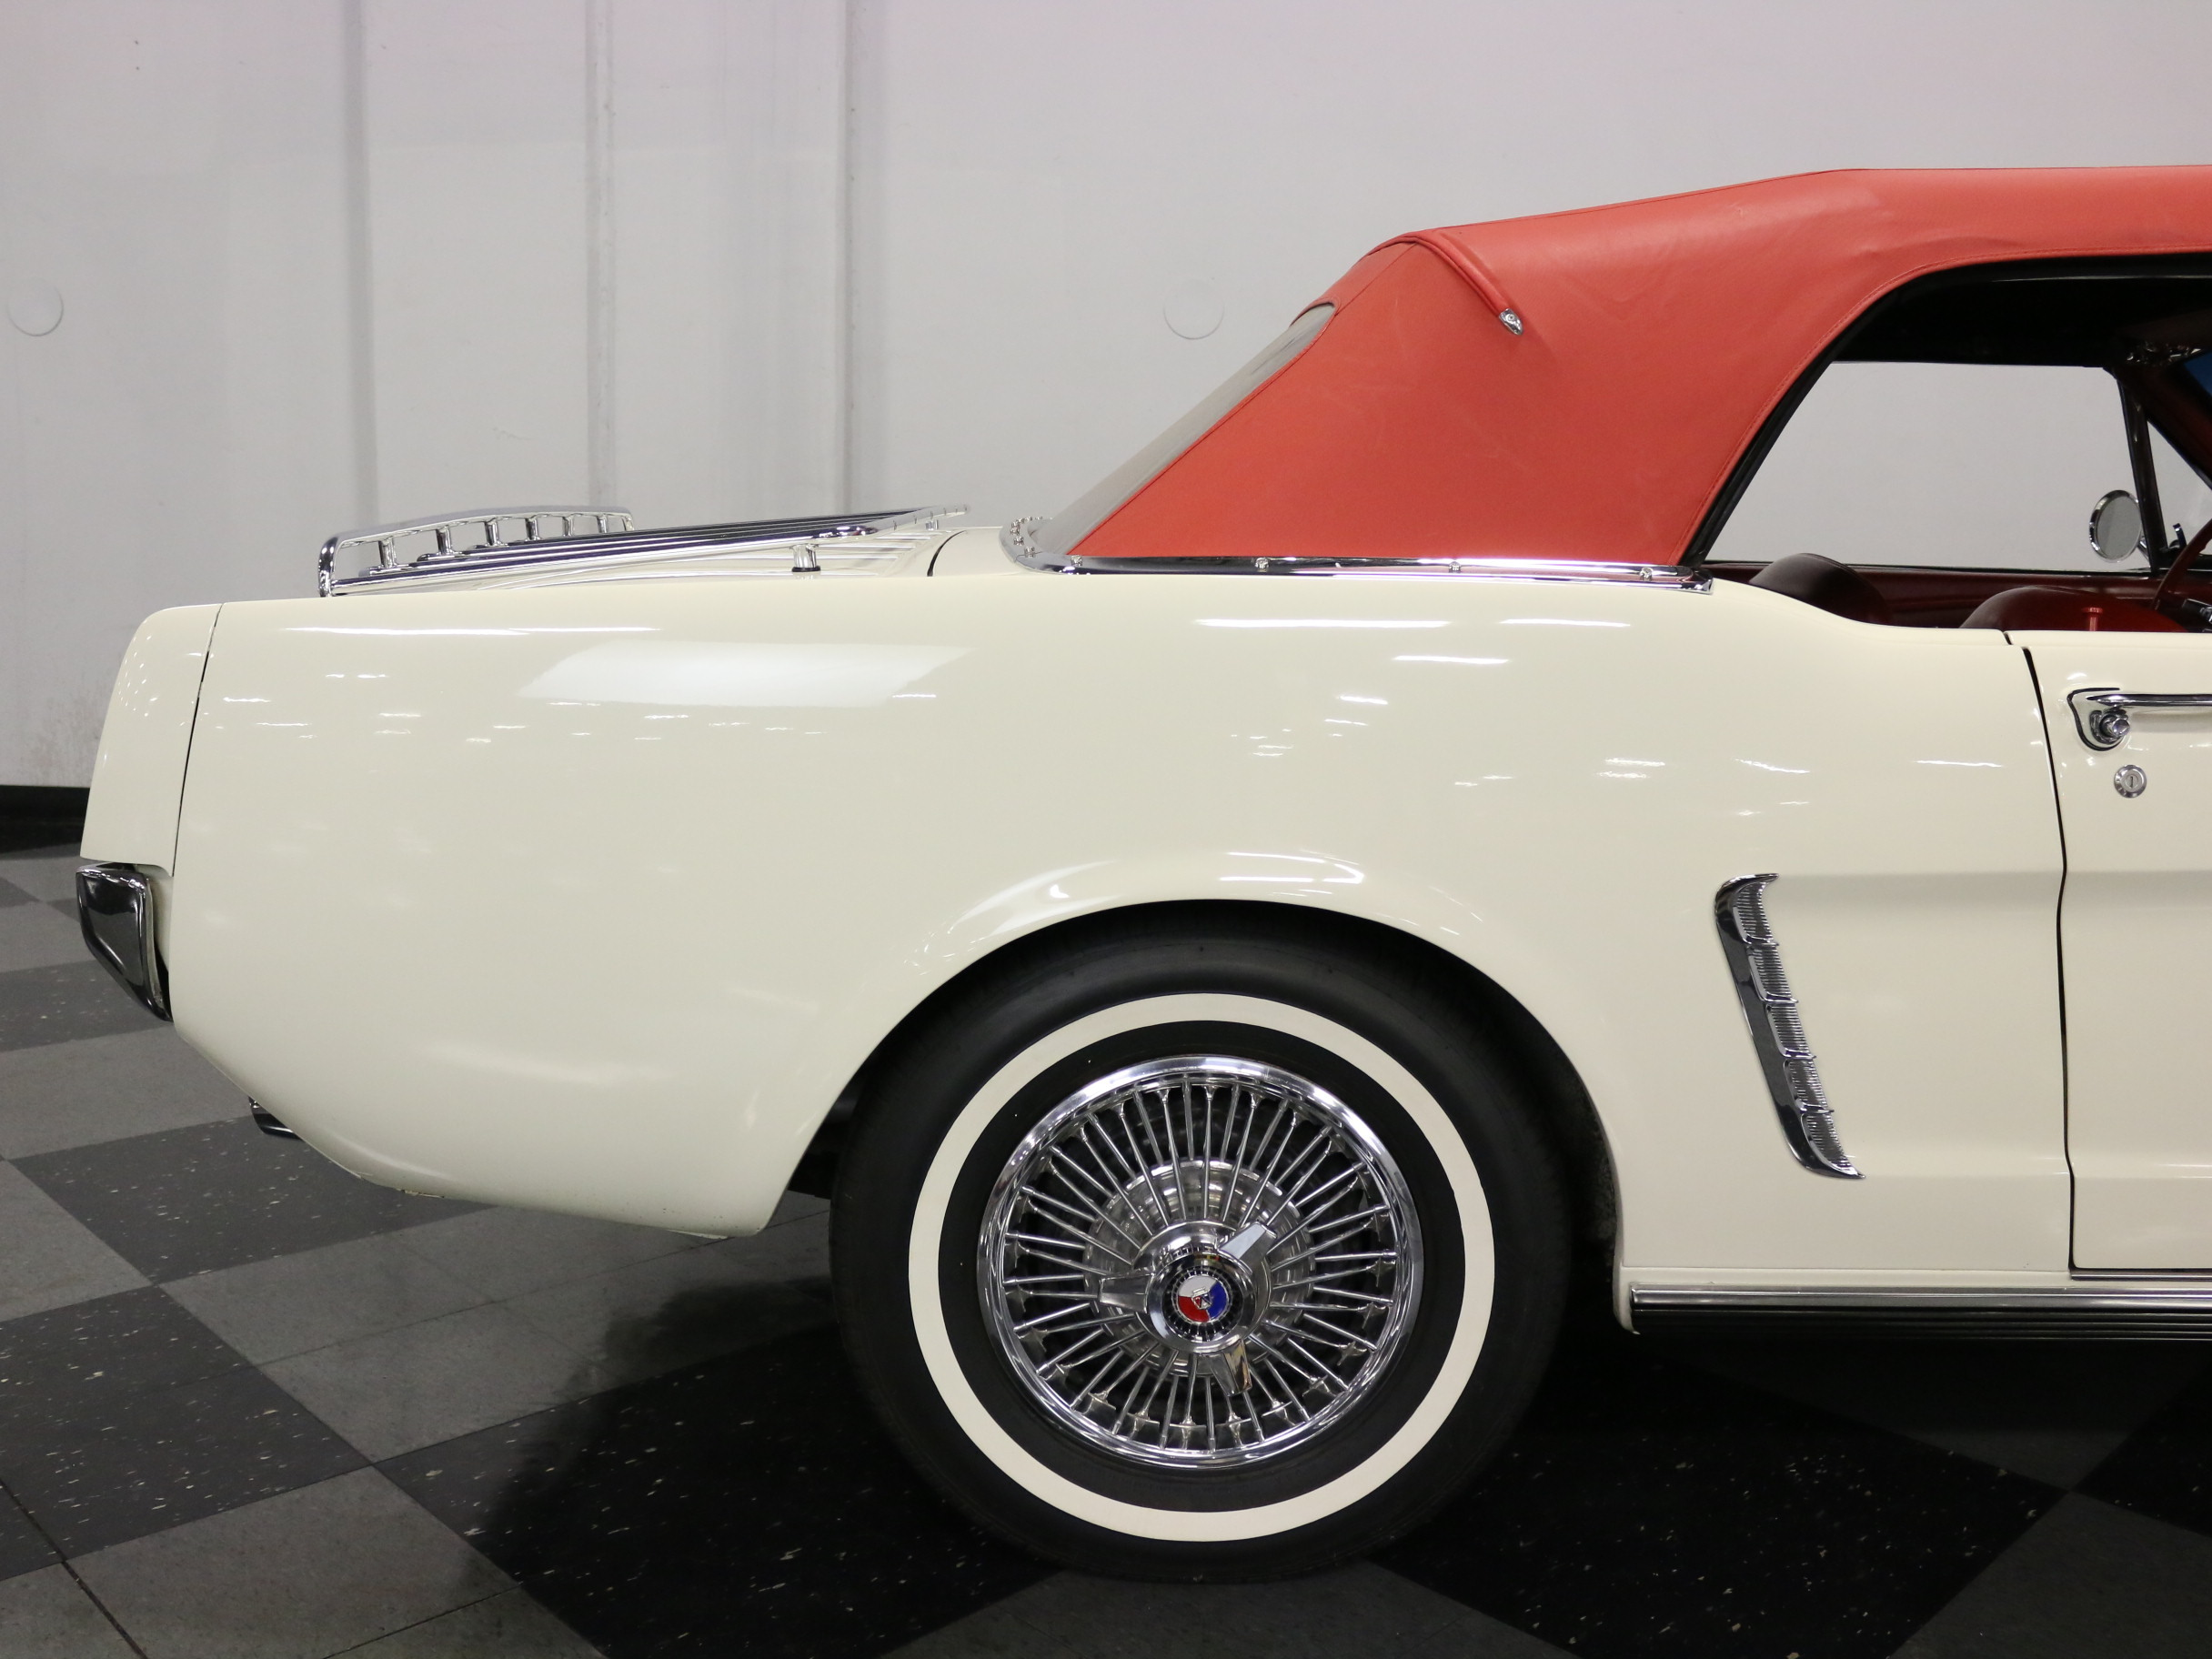 1965 Ford Mustang Convertible: BEAUTIFUL '64 1/2 W/ ORIGINAL DRIVETRAIN, F-CODE 260 V8, AUTO, PS/B, NEW TOP!